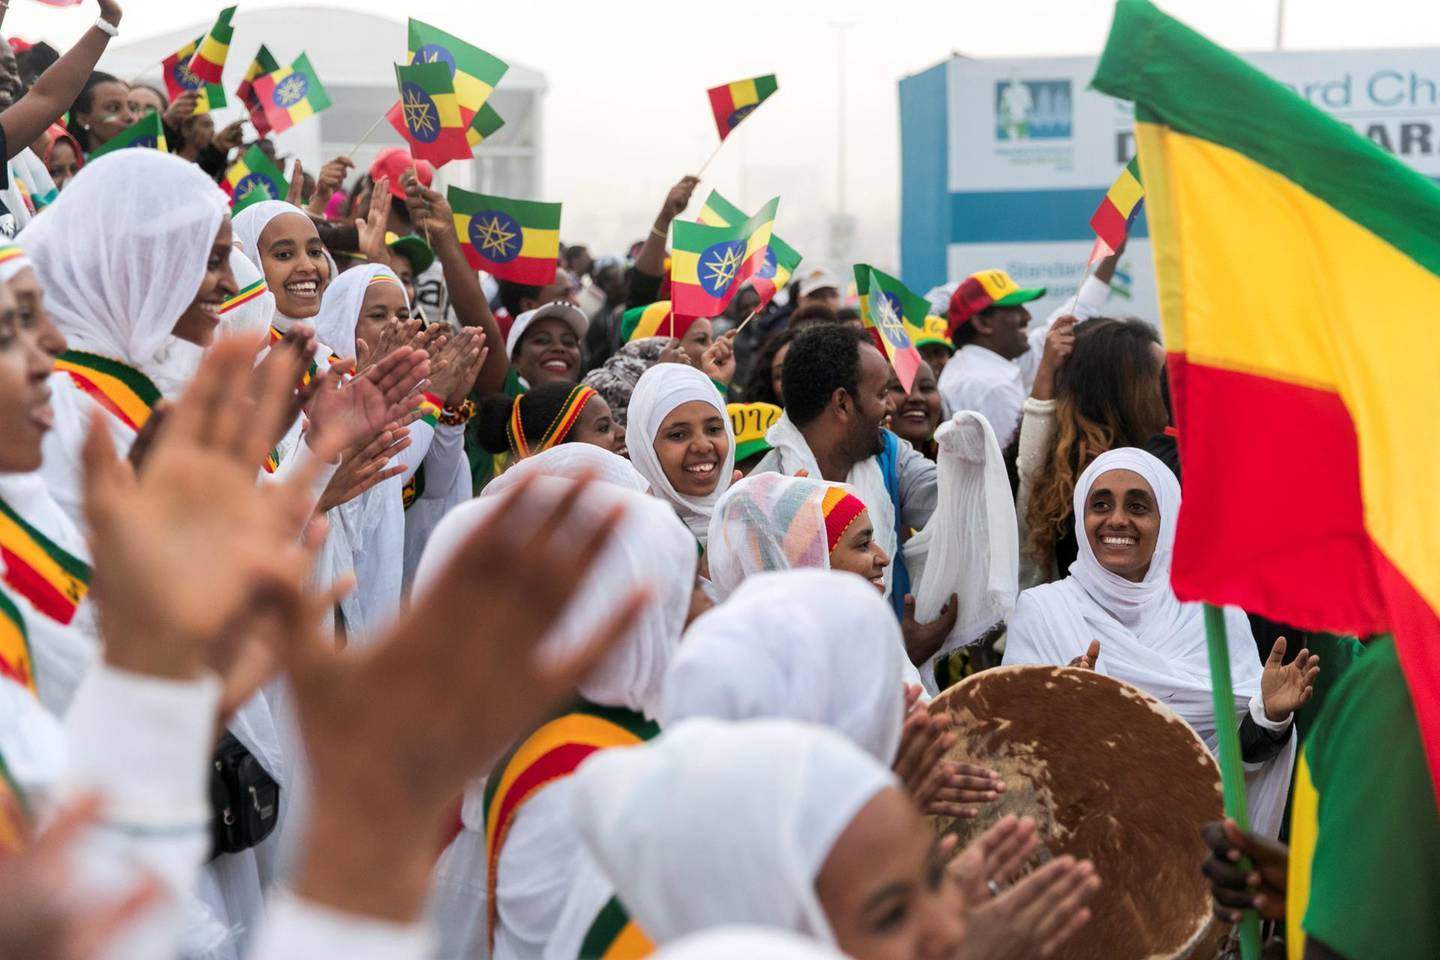 DUBAI, UNITED ARAB EMIRATES - Jan 26, 2018. Ethiopian crowd cheer on at the Standard Chartered Dubai Marathon. (Photo by Reem Mohammed/The National)Reporter: AmithSection: NA + SP